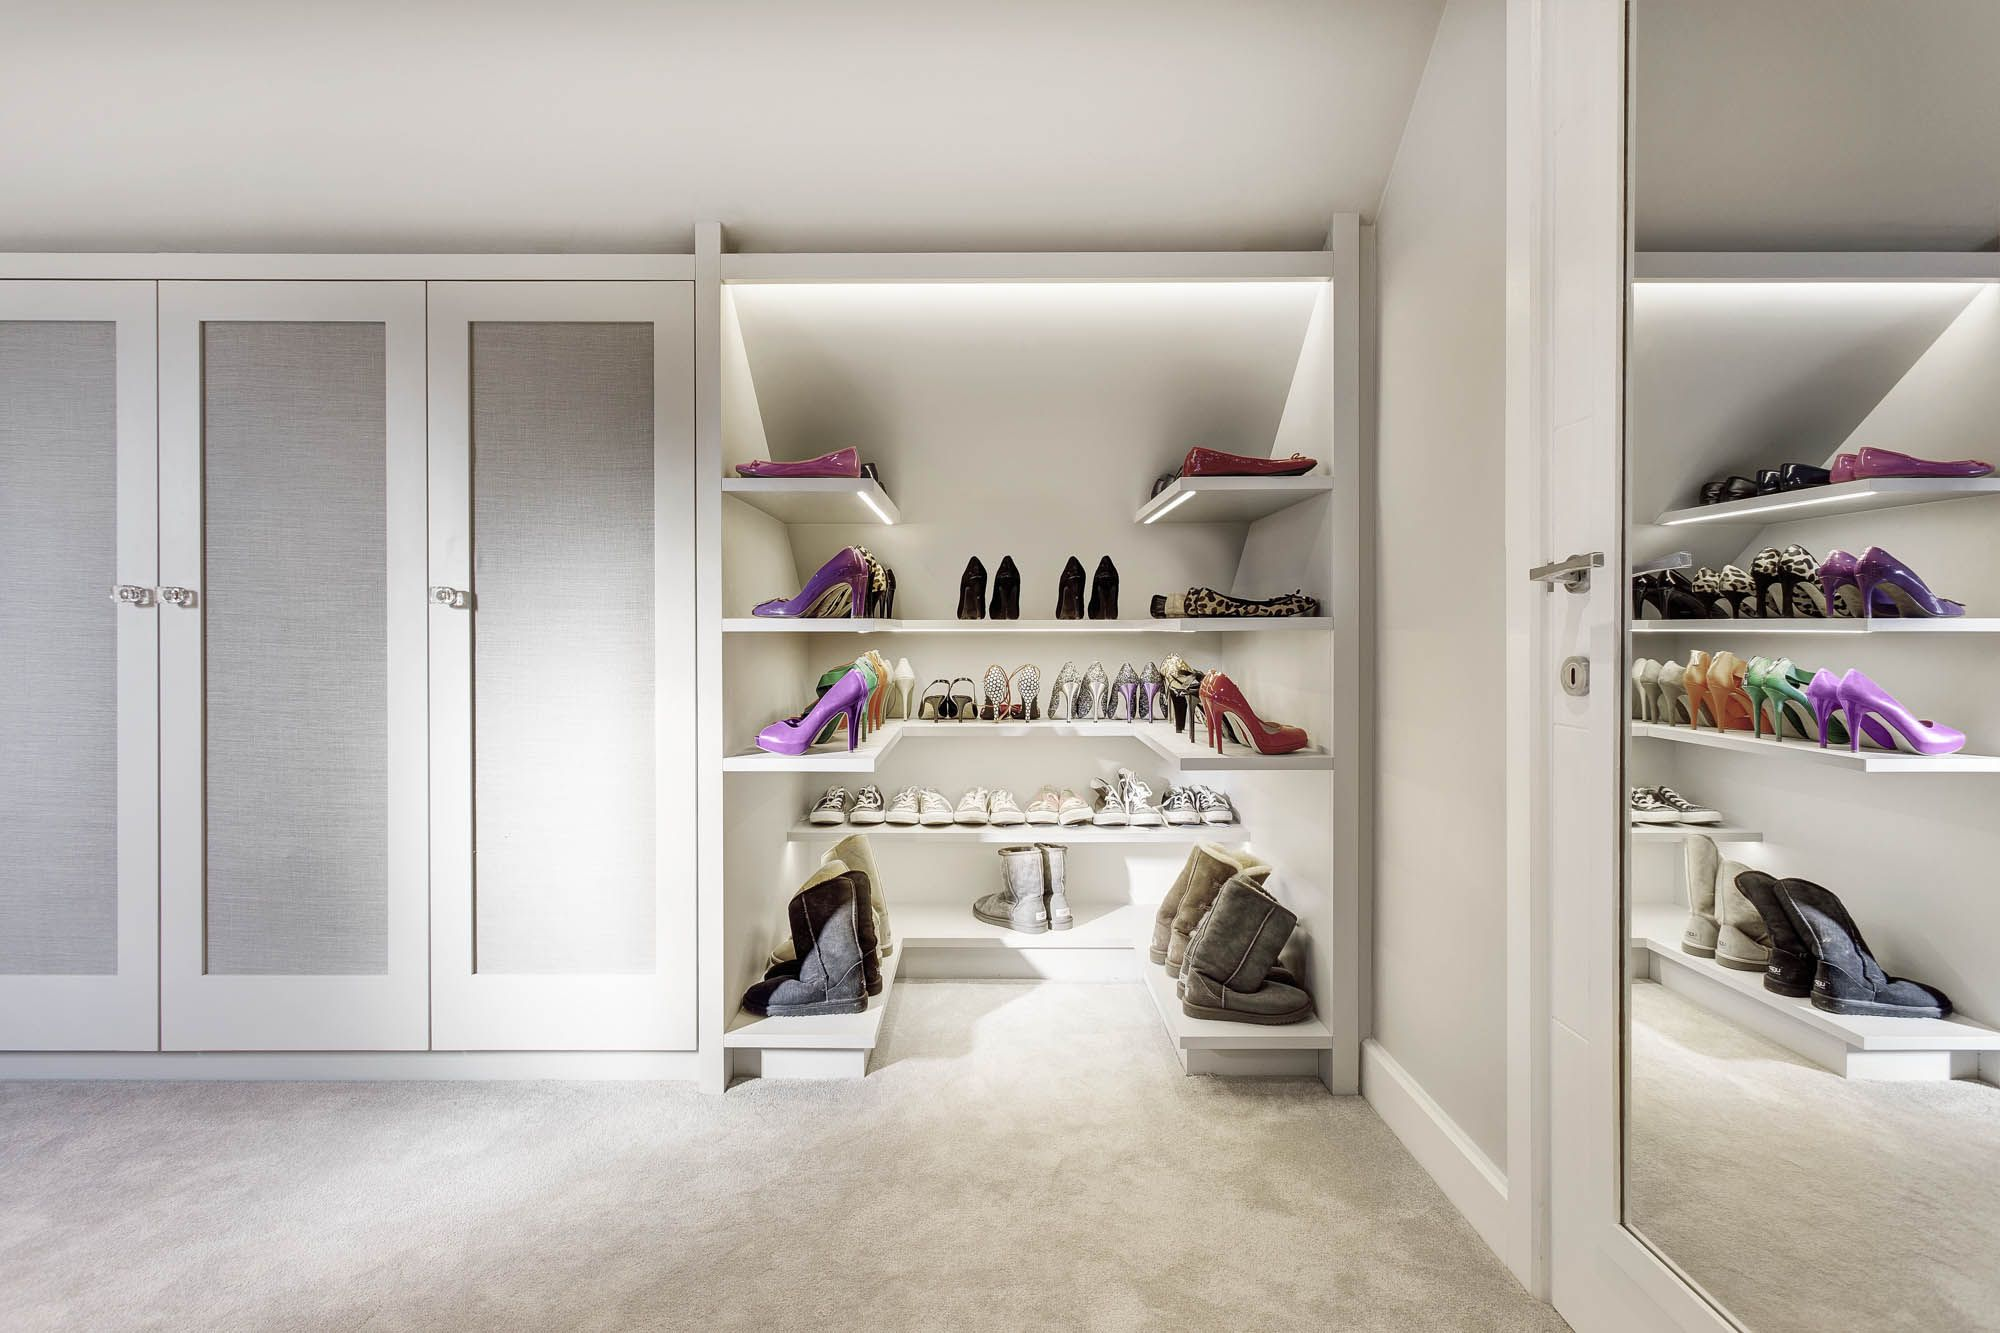 Bespoke Shoe Storage In Dressing Room Project Photography By Wwwmartingardnercom